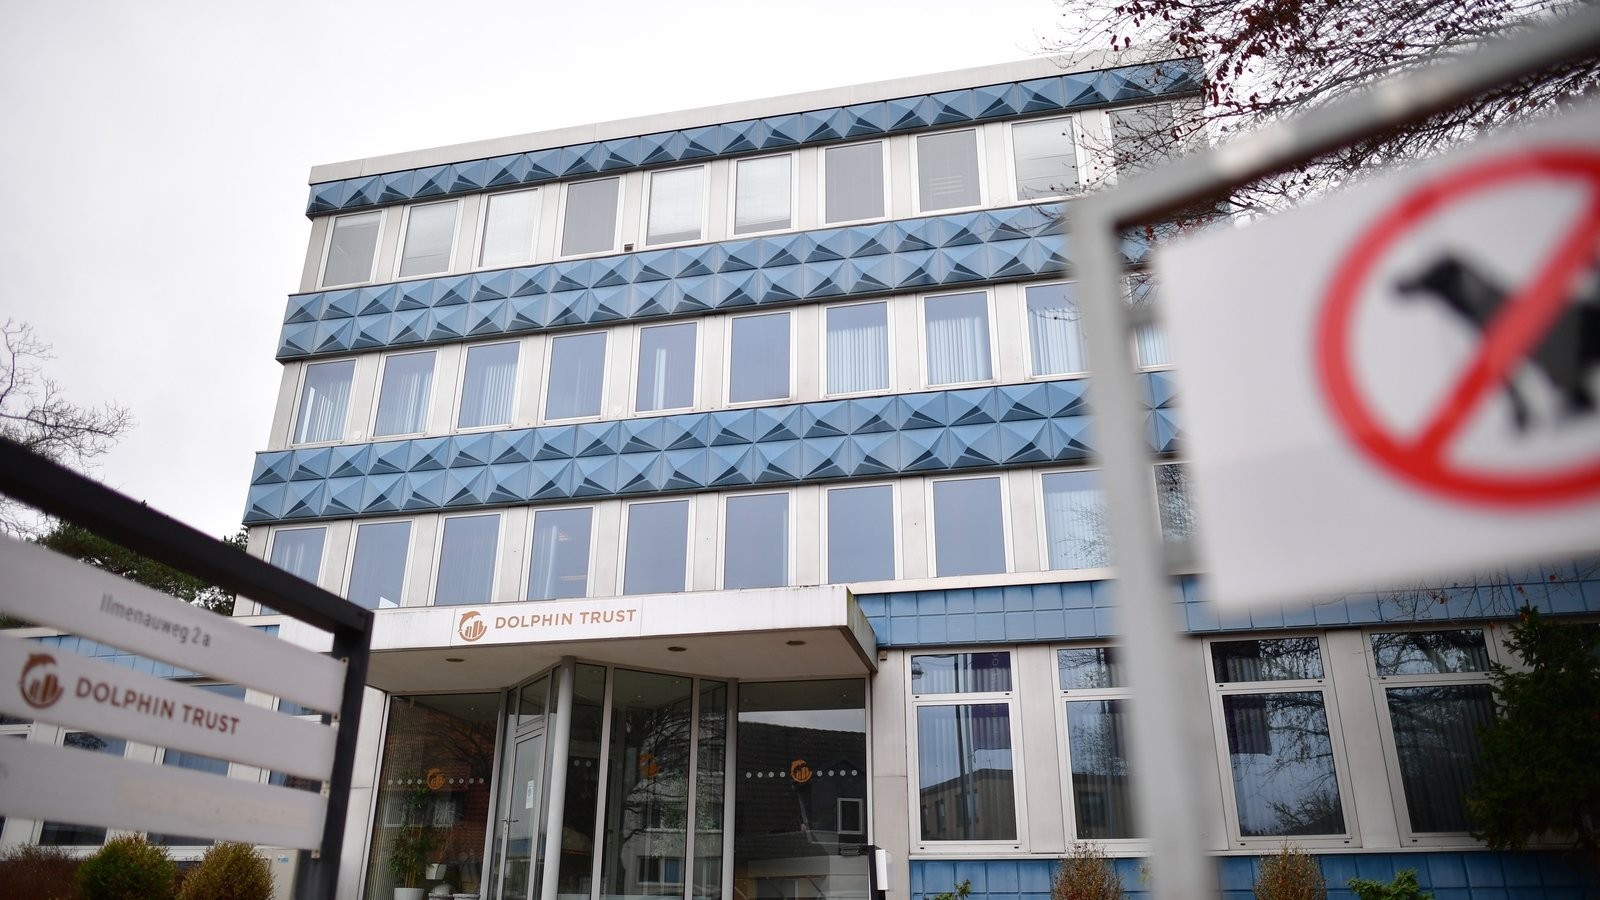 Image - The corporate headquarters of Dolphin Trust in Langenhagen, in Hanover, Germany